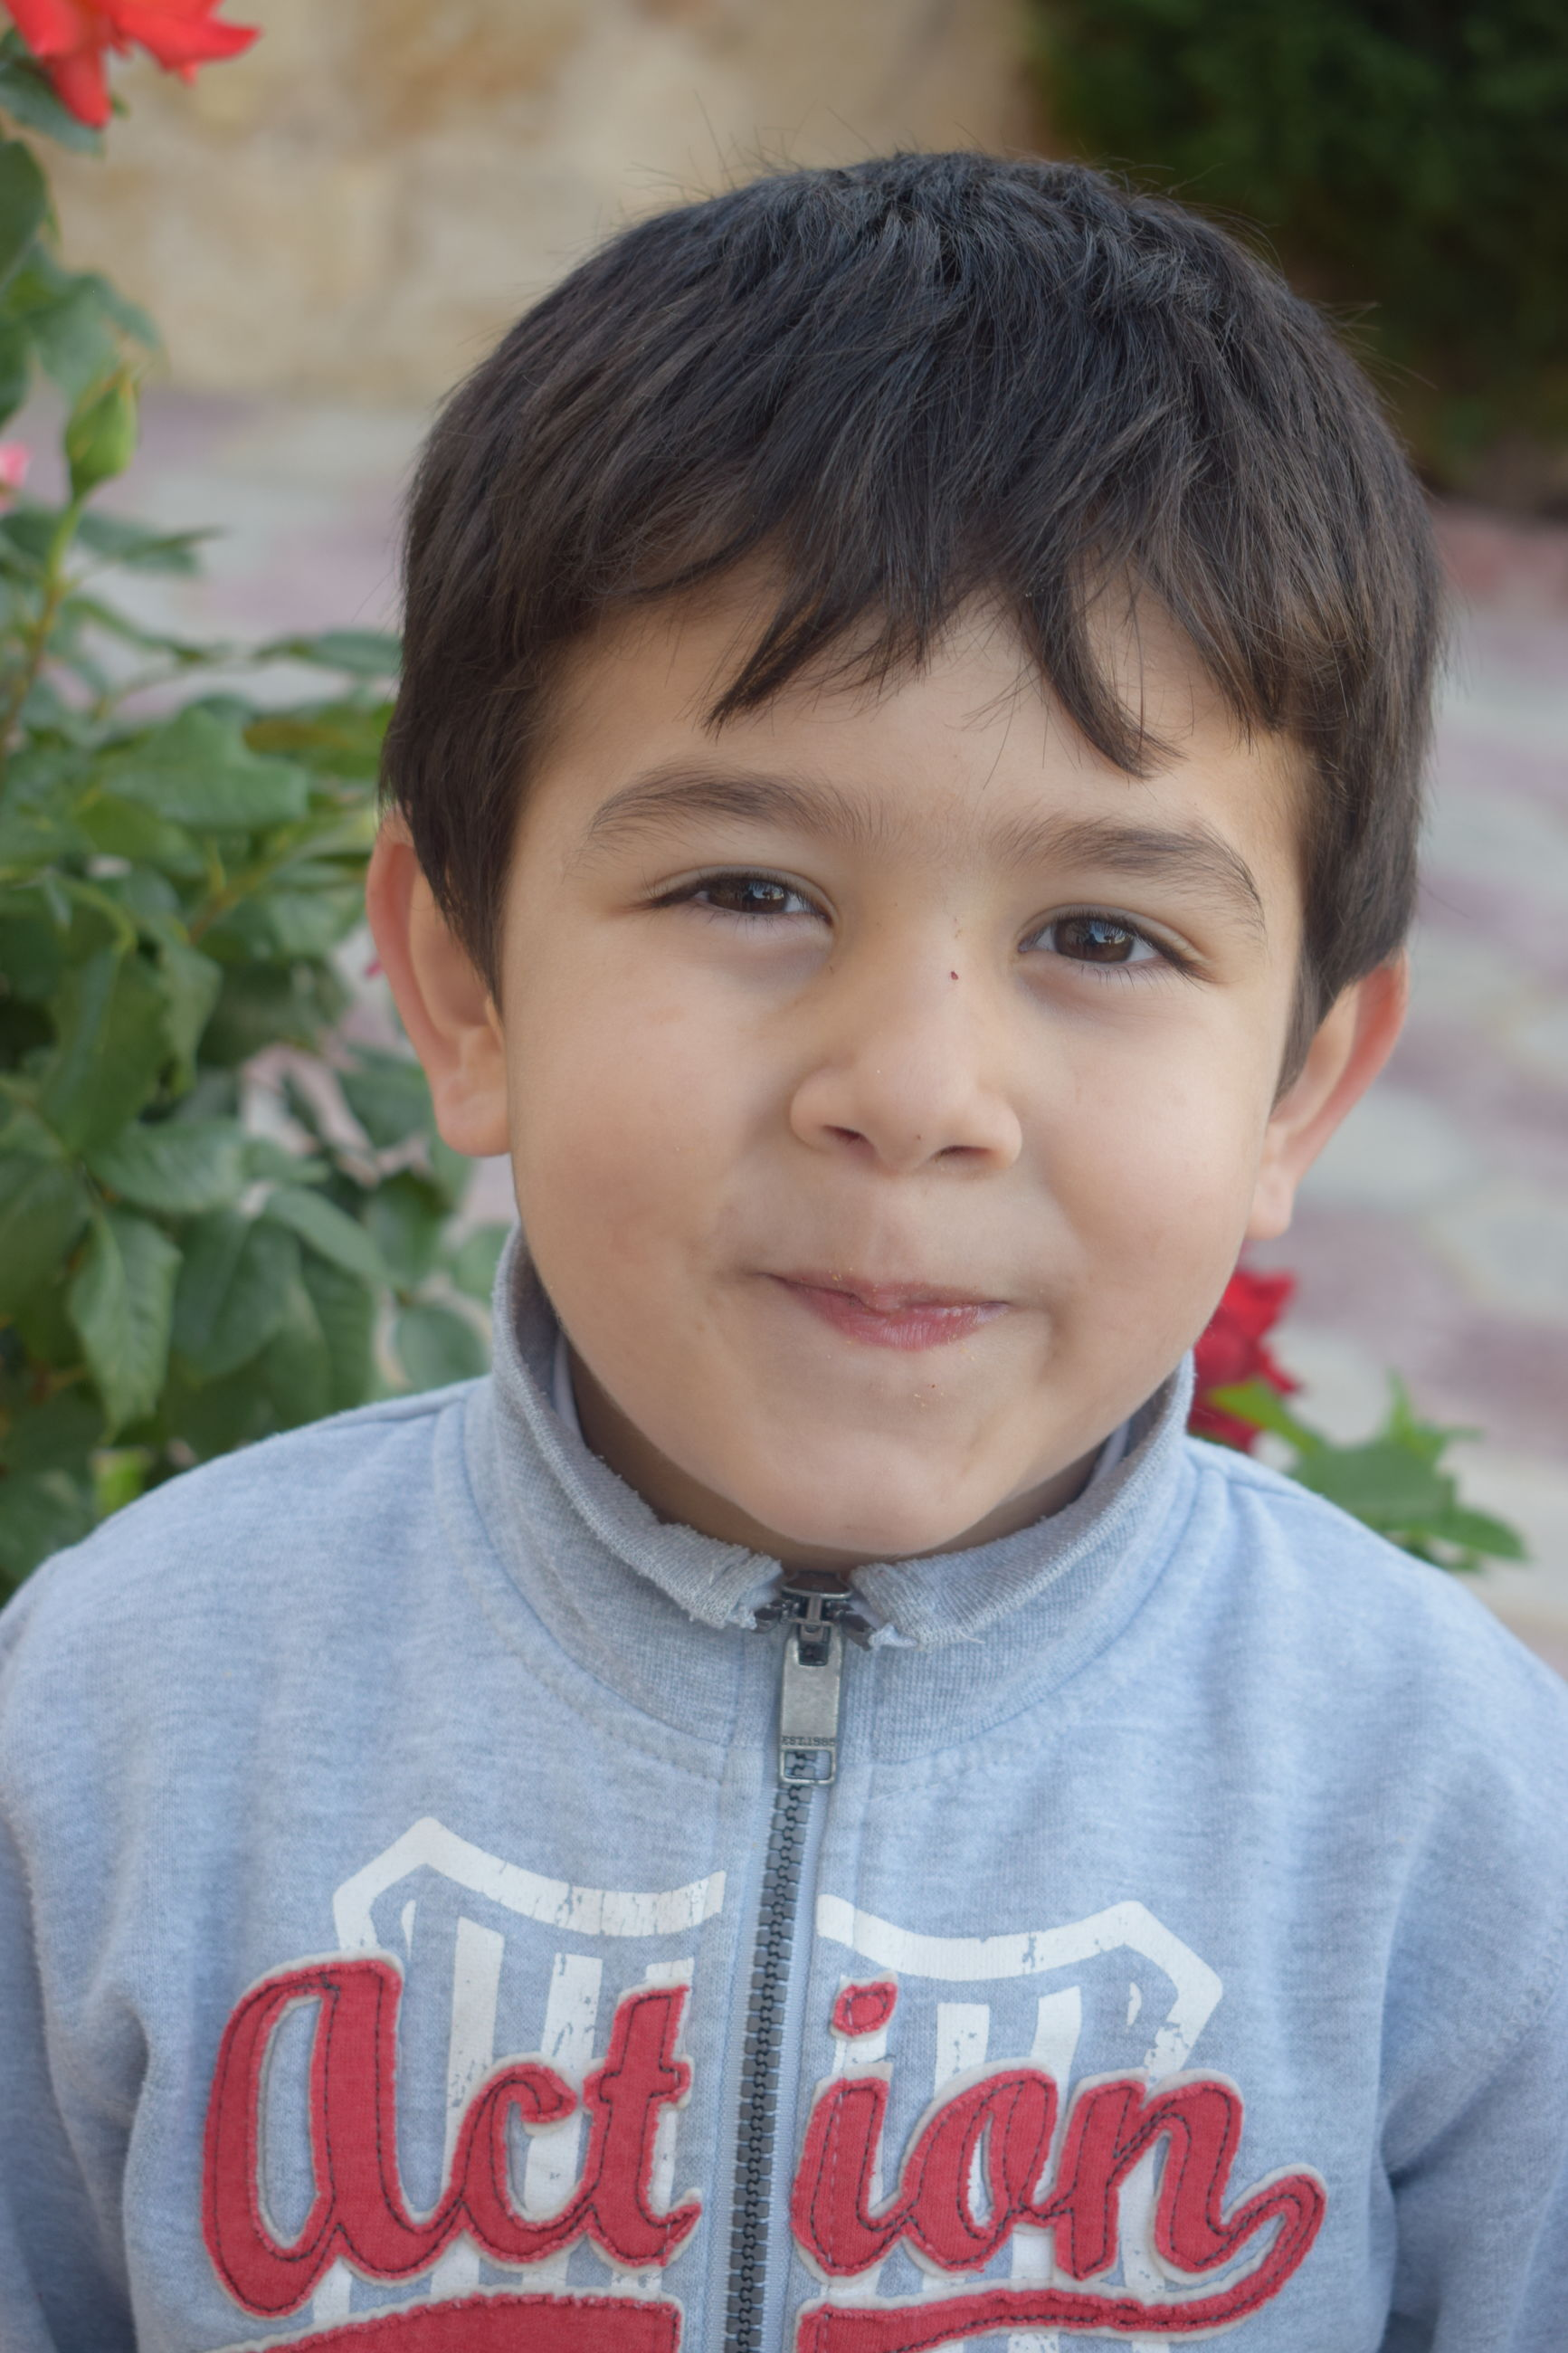 portrait, child, one person, real people, males, boys, childhood, men, front view, headshot, looking at camera, casual clothing, innocence, focus on foreground, cute, close-up, lifestyles, day, making a face